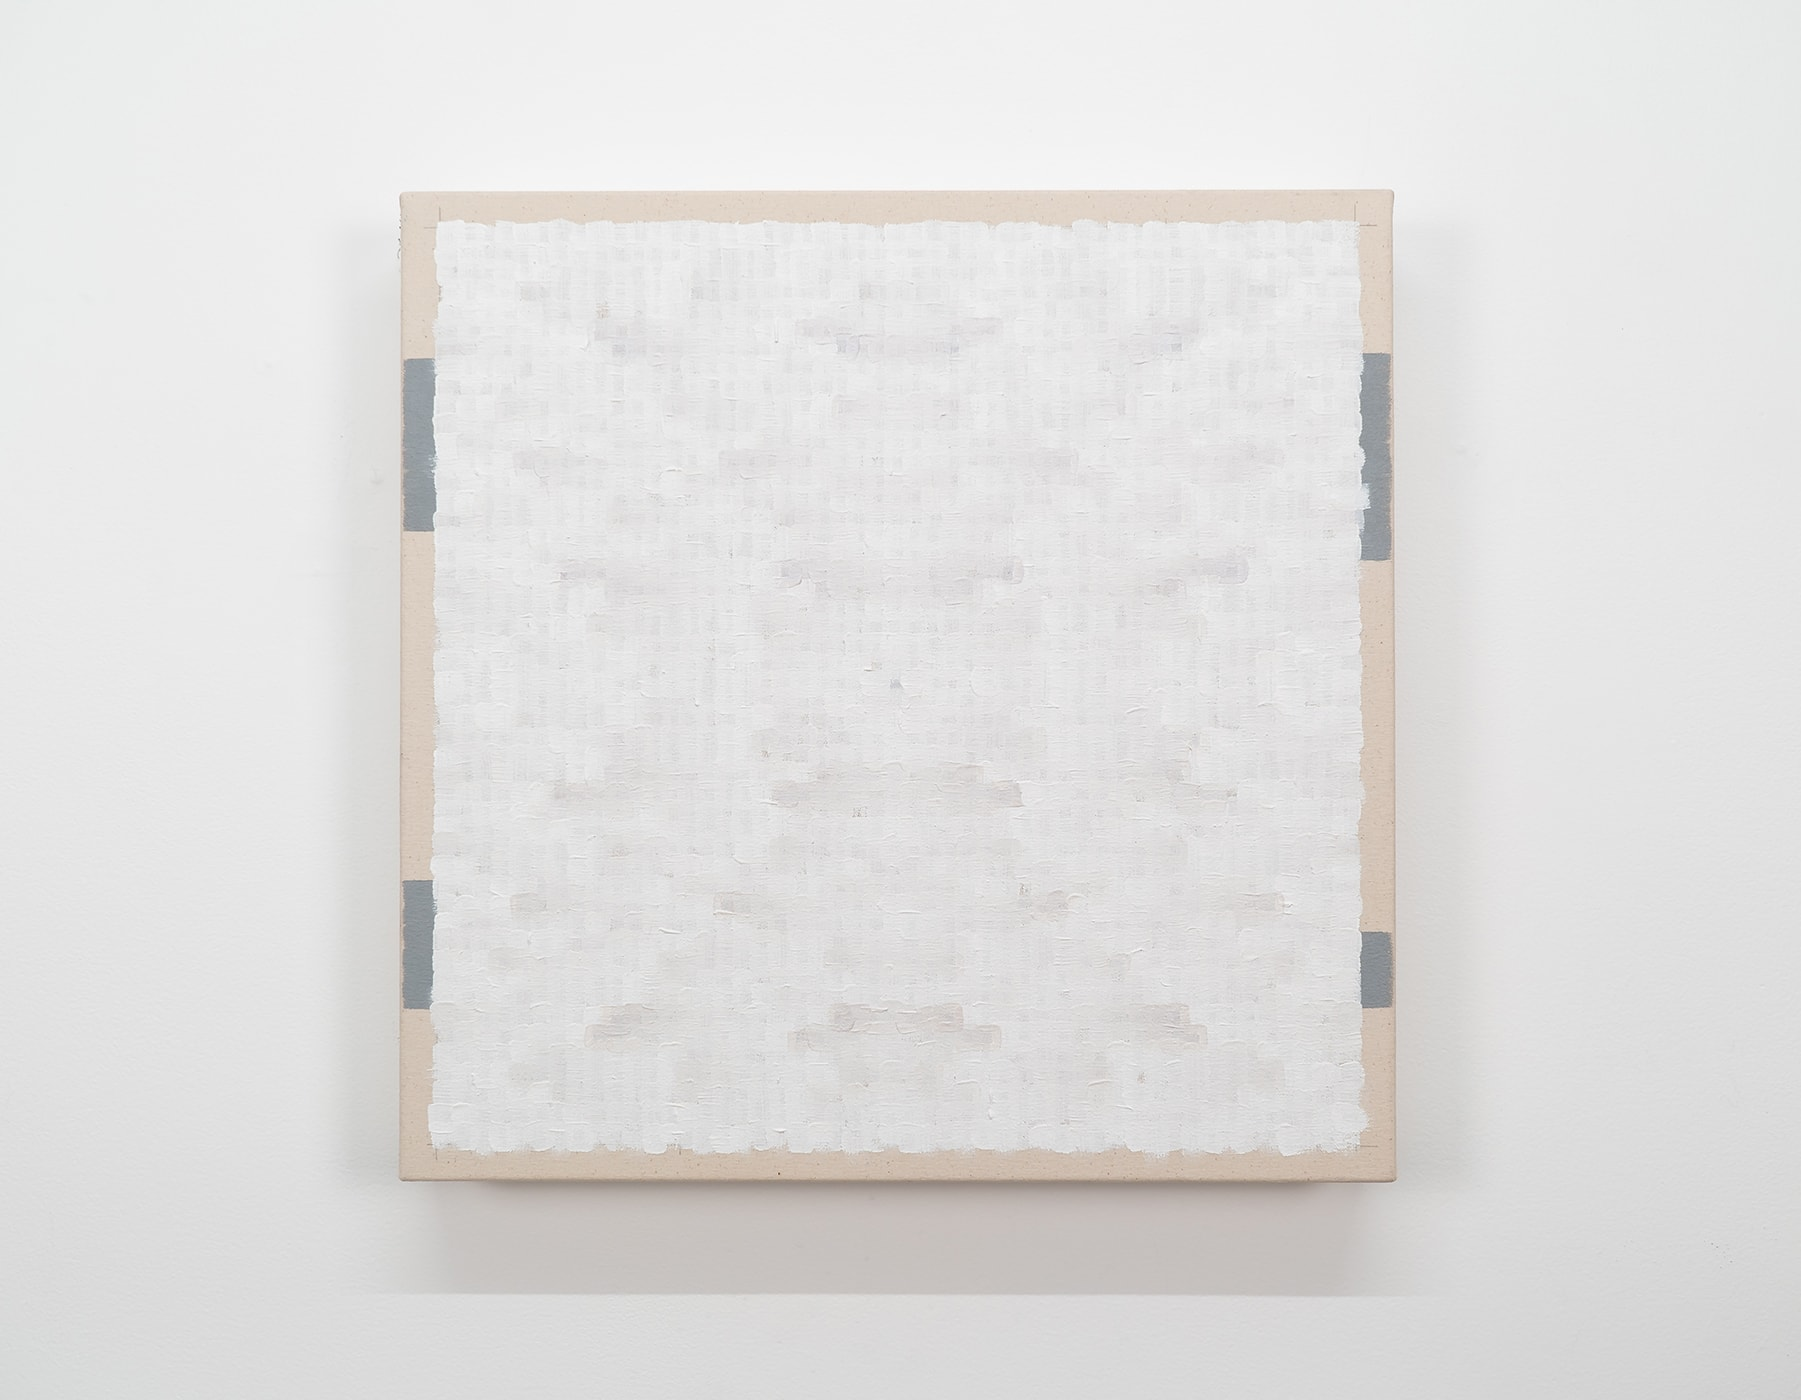 Randy Gibson : Quadrilateral Grid 4 (Interference)